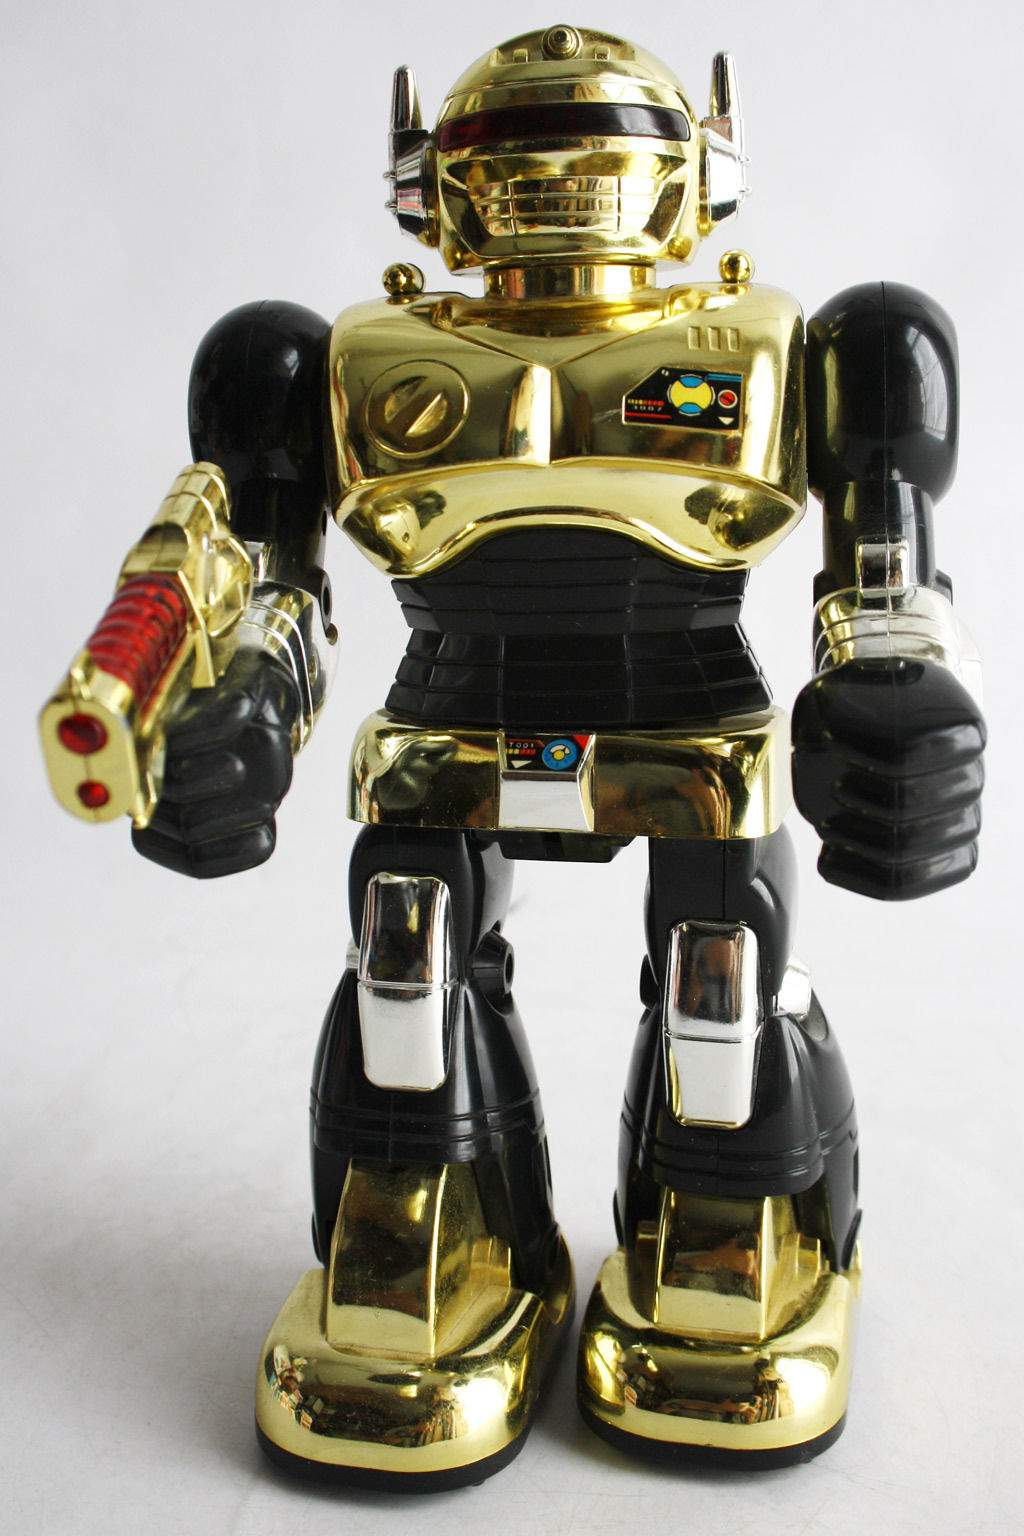 Best Robot Toys : Top robot no by hap p kid toys the old robots web site